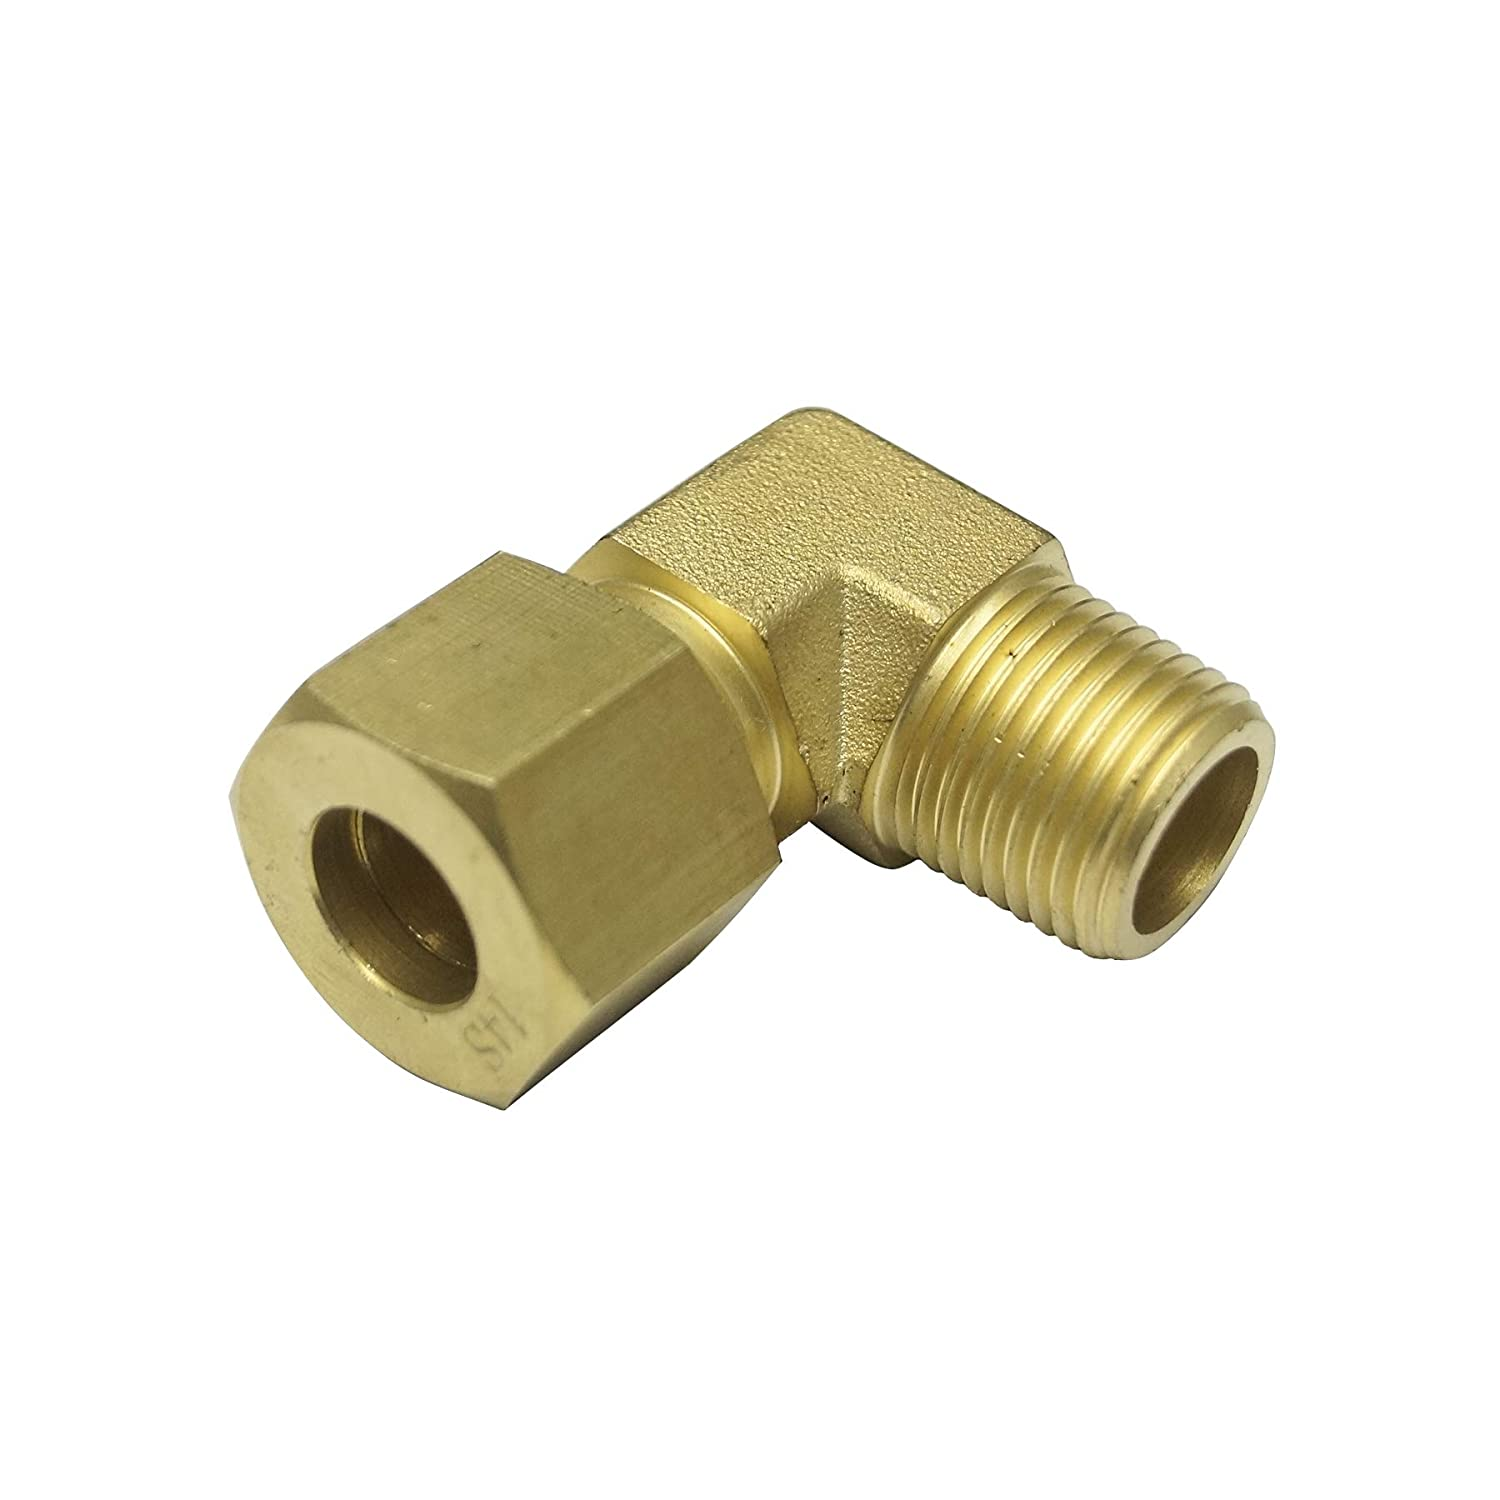 90 Degree Male Elbow, Brass Material, 25S x 1